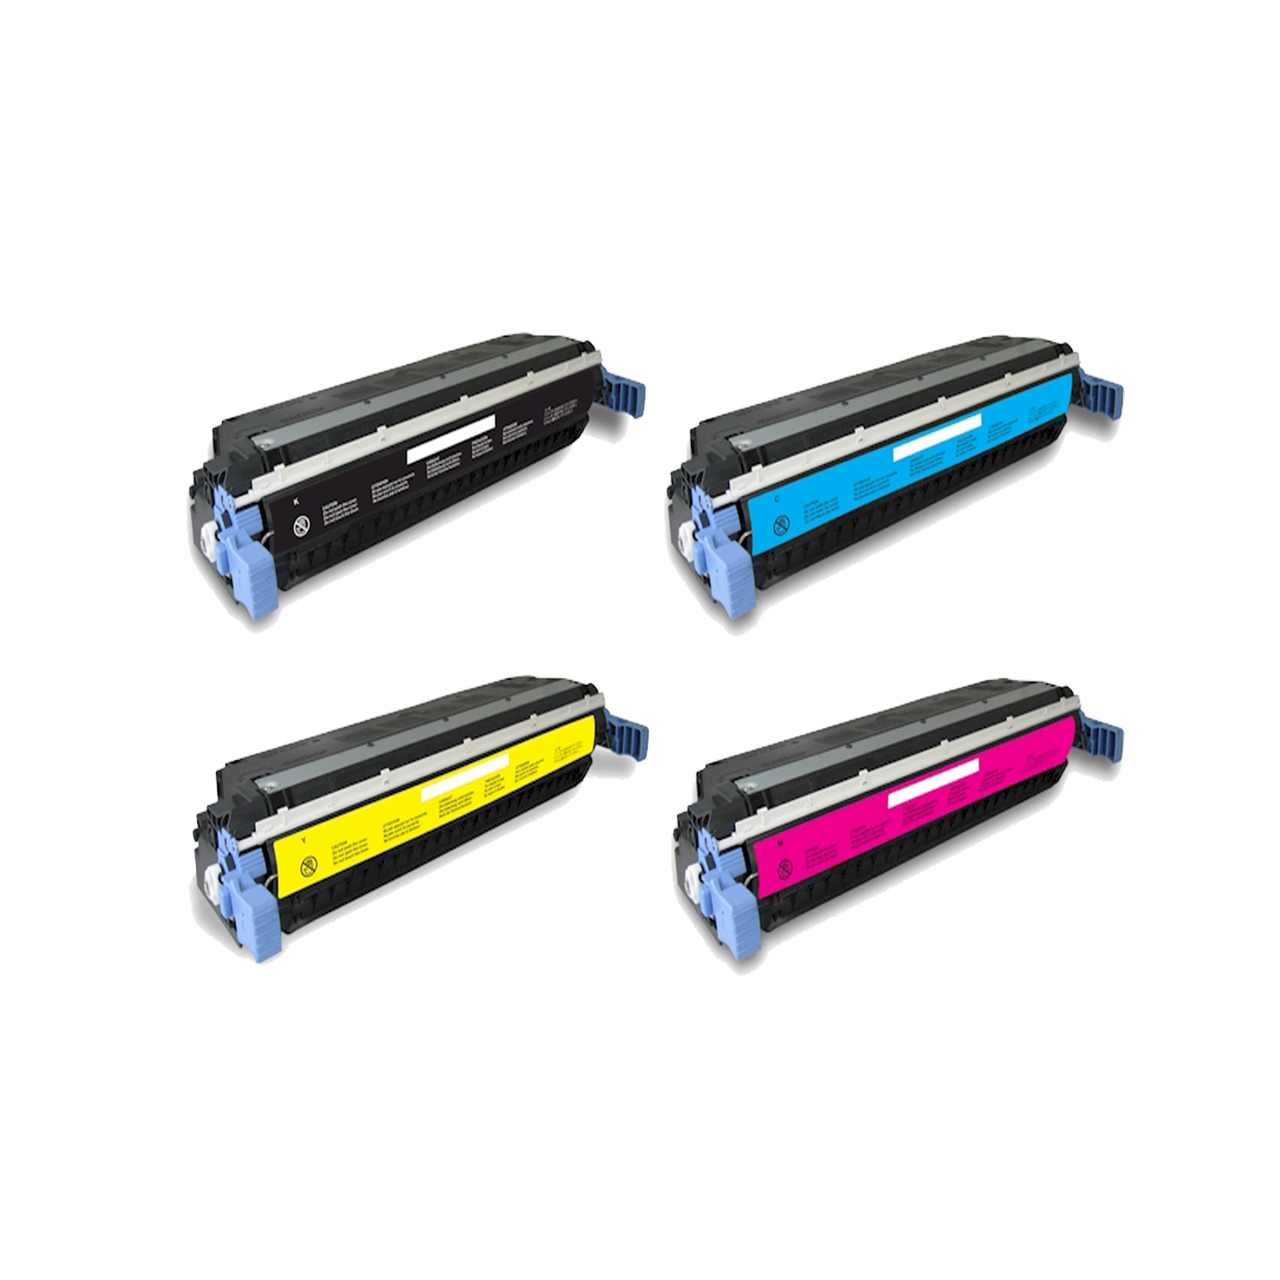 HP C9730A/C9730A/C9730A/C9730A: Remanufactured TONER CARTRIDGE BLACK/CYAN/YELLOW/MAGENTA